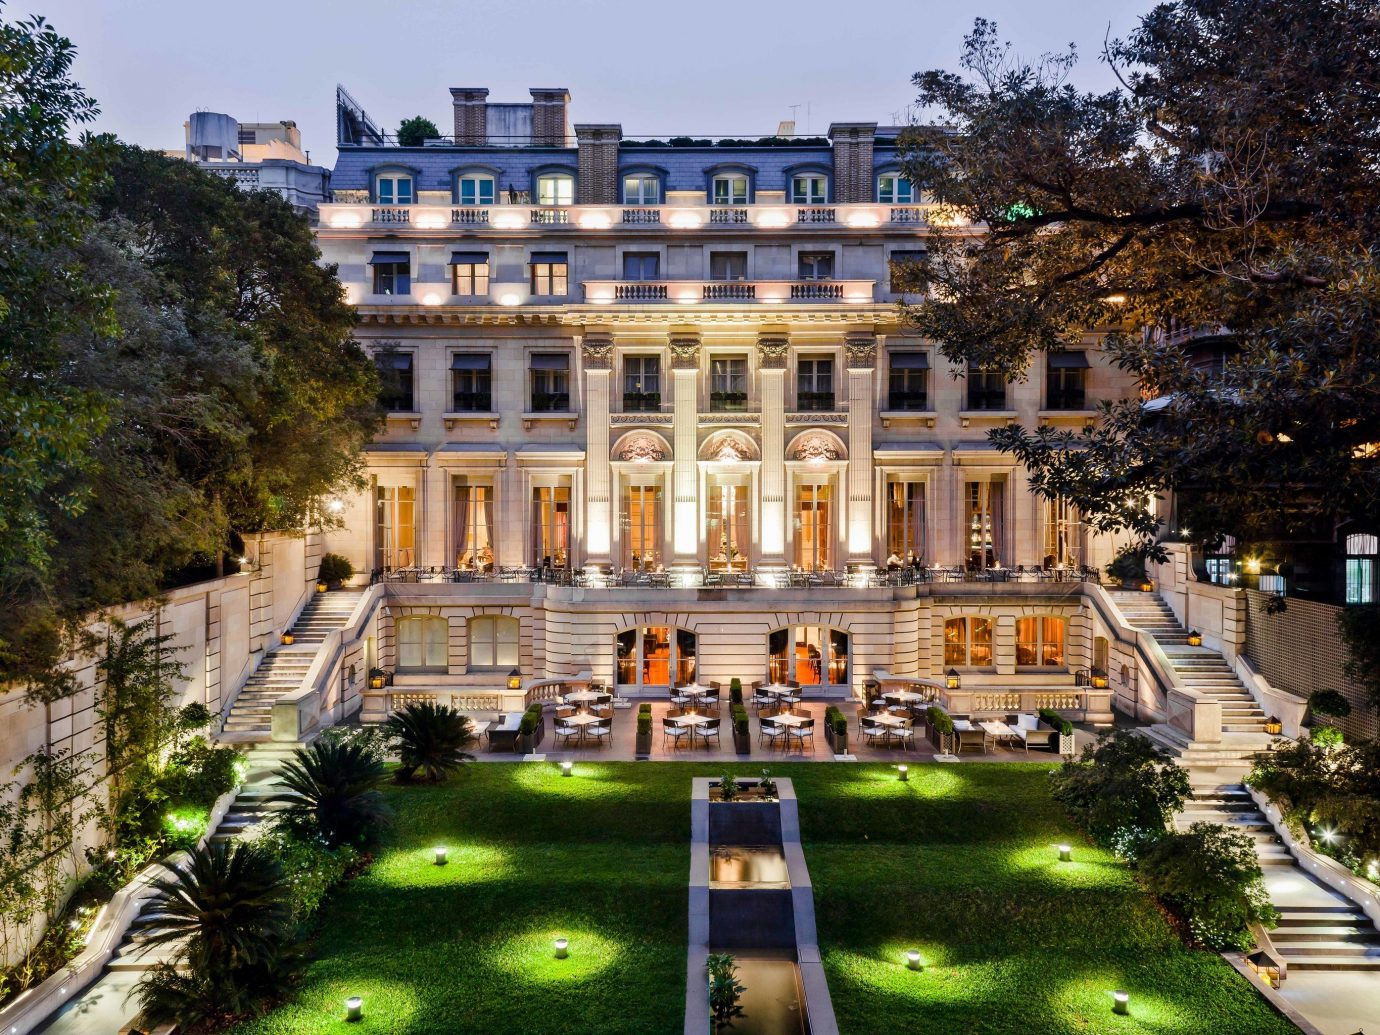 Boutique Hotels Luxury Travel tree outdoor mansion estate building stately home City real estate plaza Villa mixed use home plant national trust for places of historic interest or natural beauty facade palace historic house house apartment building Resort